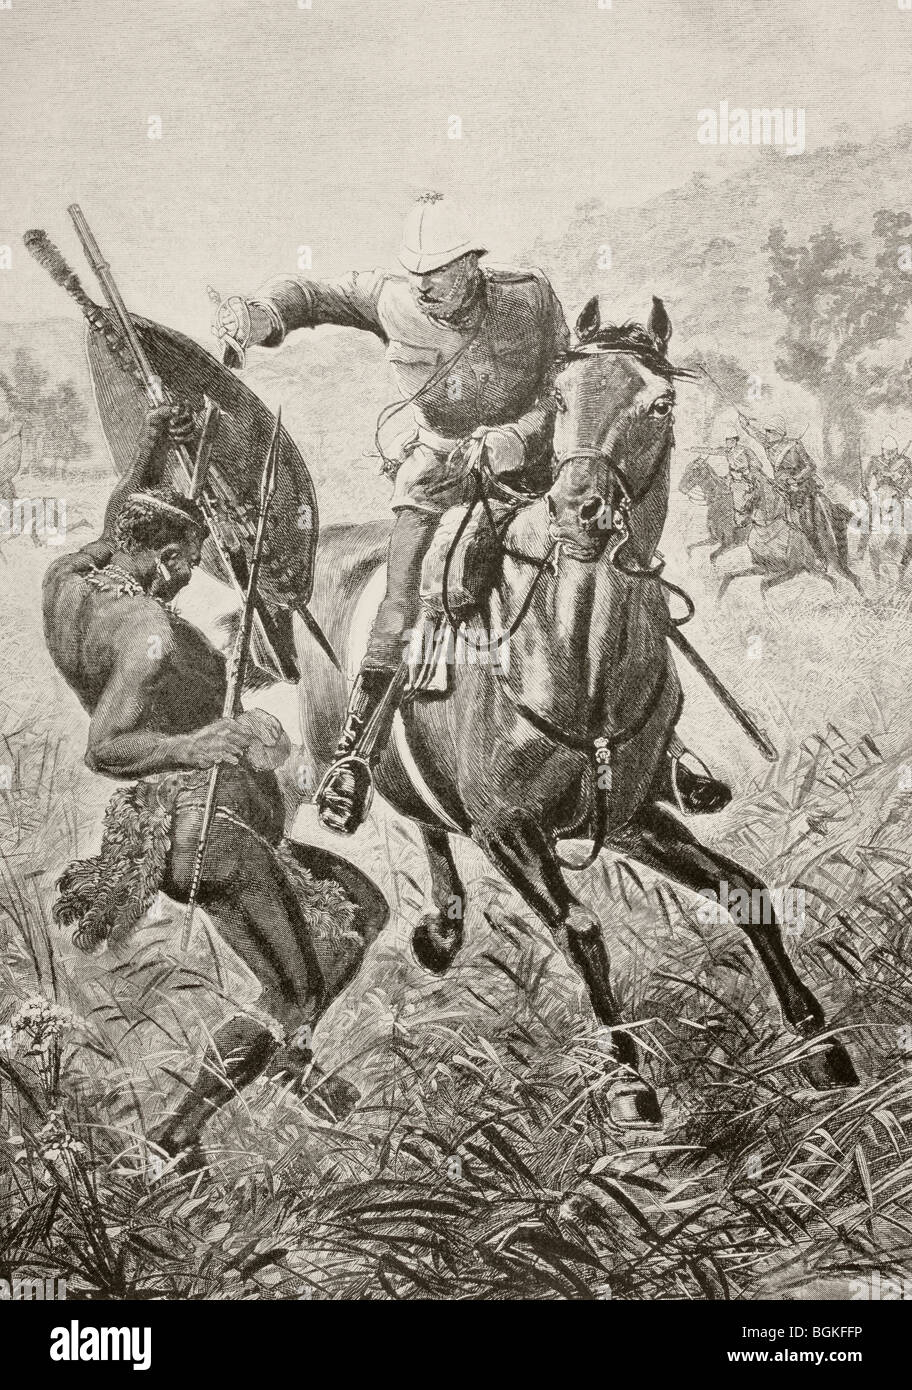 An English cavalryman attacks a Zulu warrior during the Anglo-Zulu war of 1879. - Stock Image